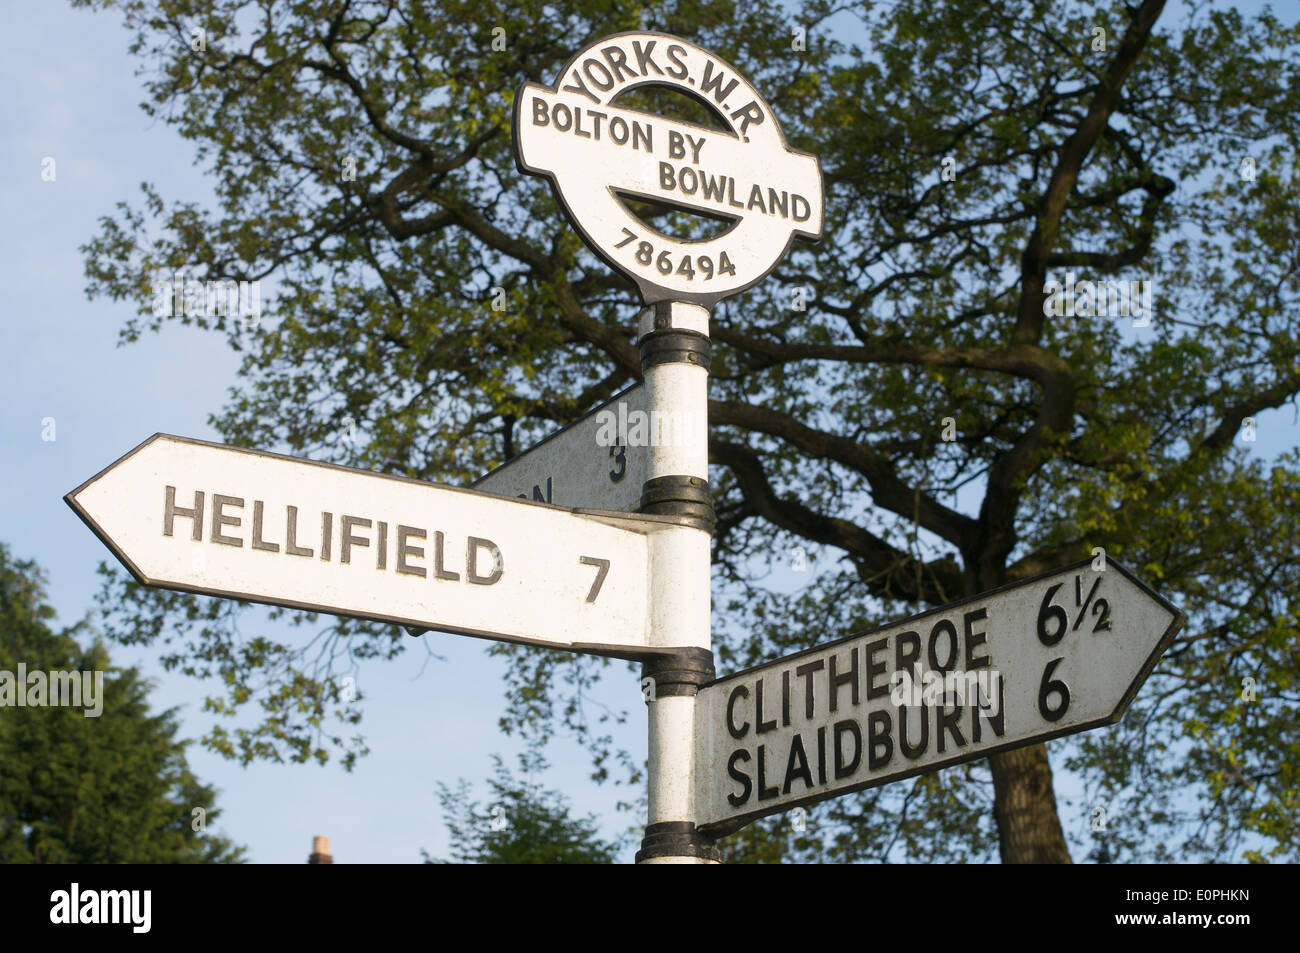 Old cast iron road sign in Bolton-by-Bowland, Lancashire, England, UK - Stock Image